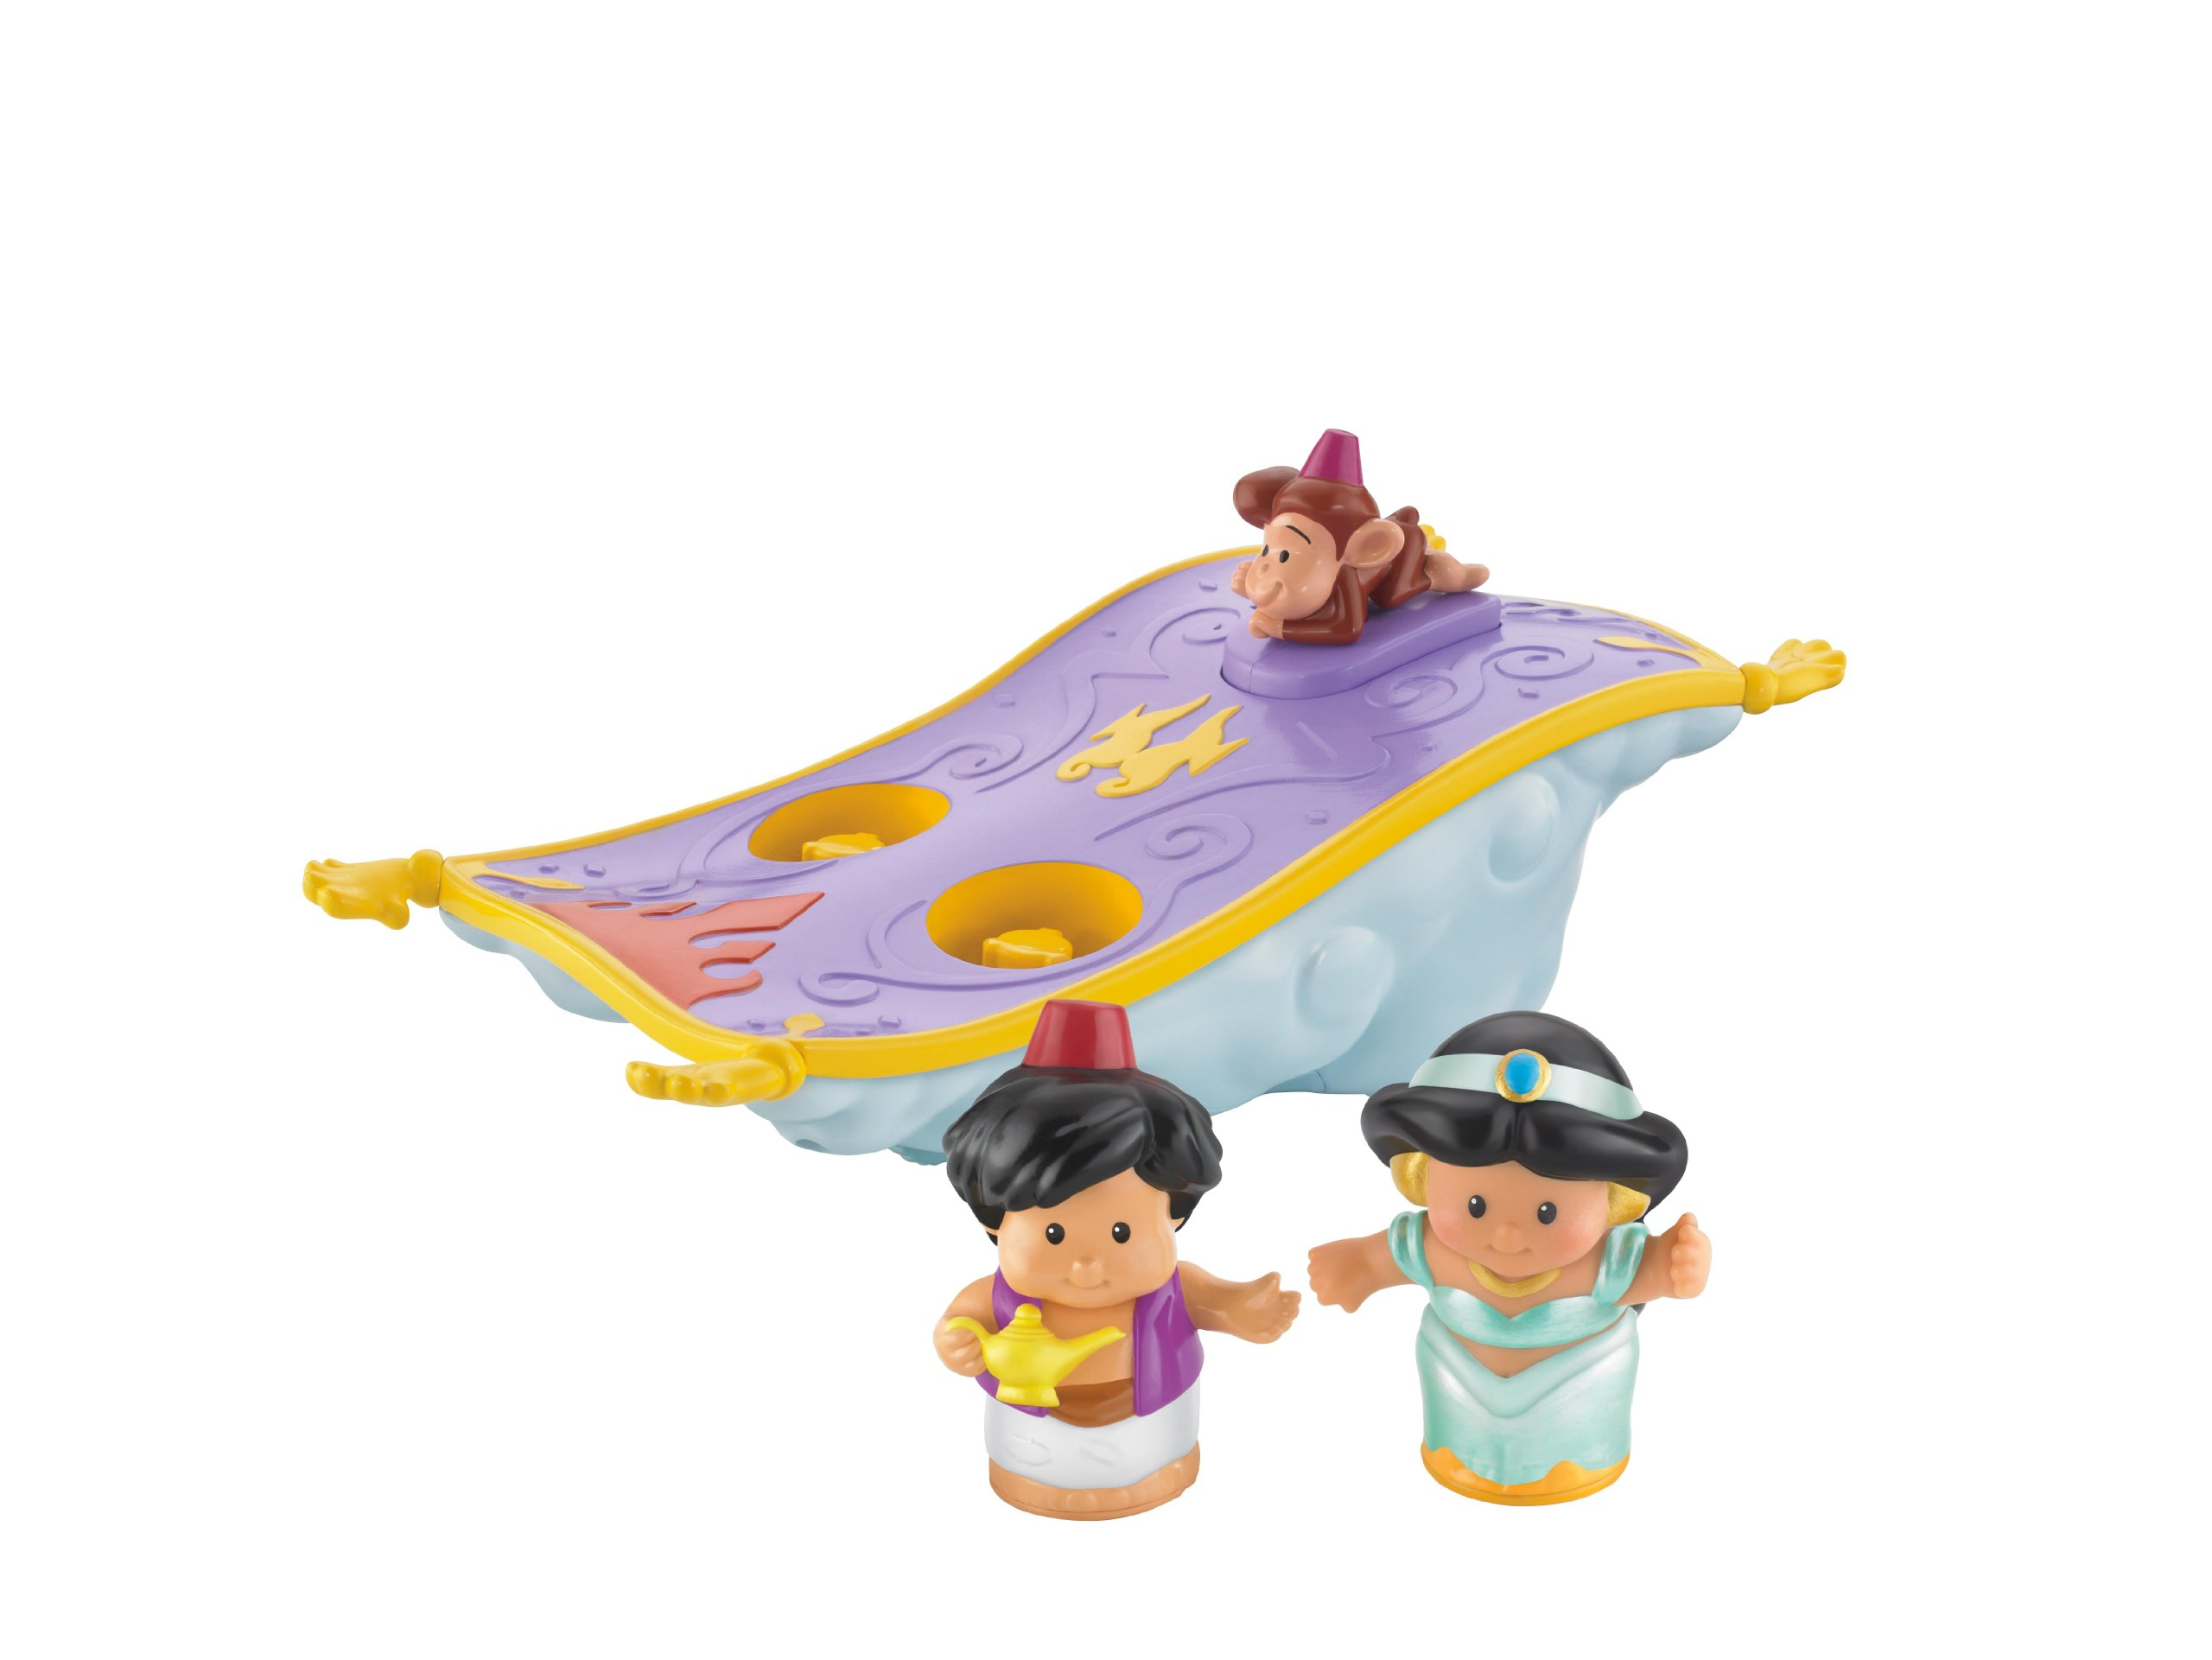 Aladdin Fliegender Teppich Spiel Disney Sing Along Songs Aladdin Car Interior Design